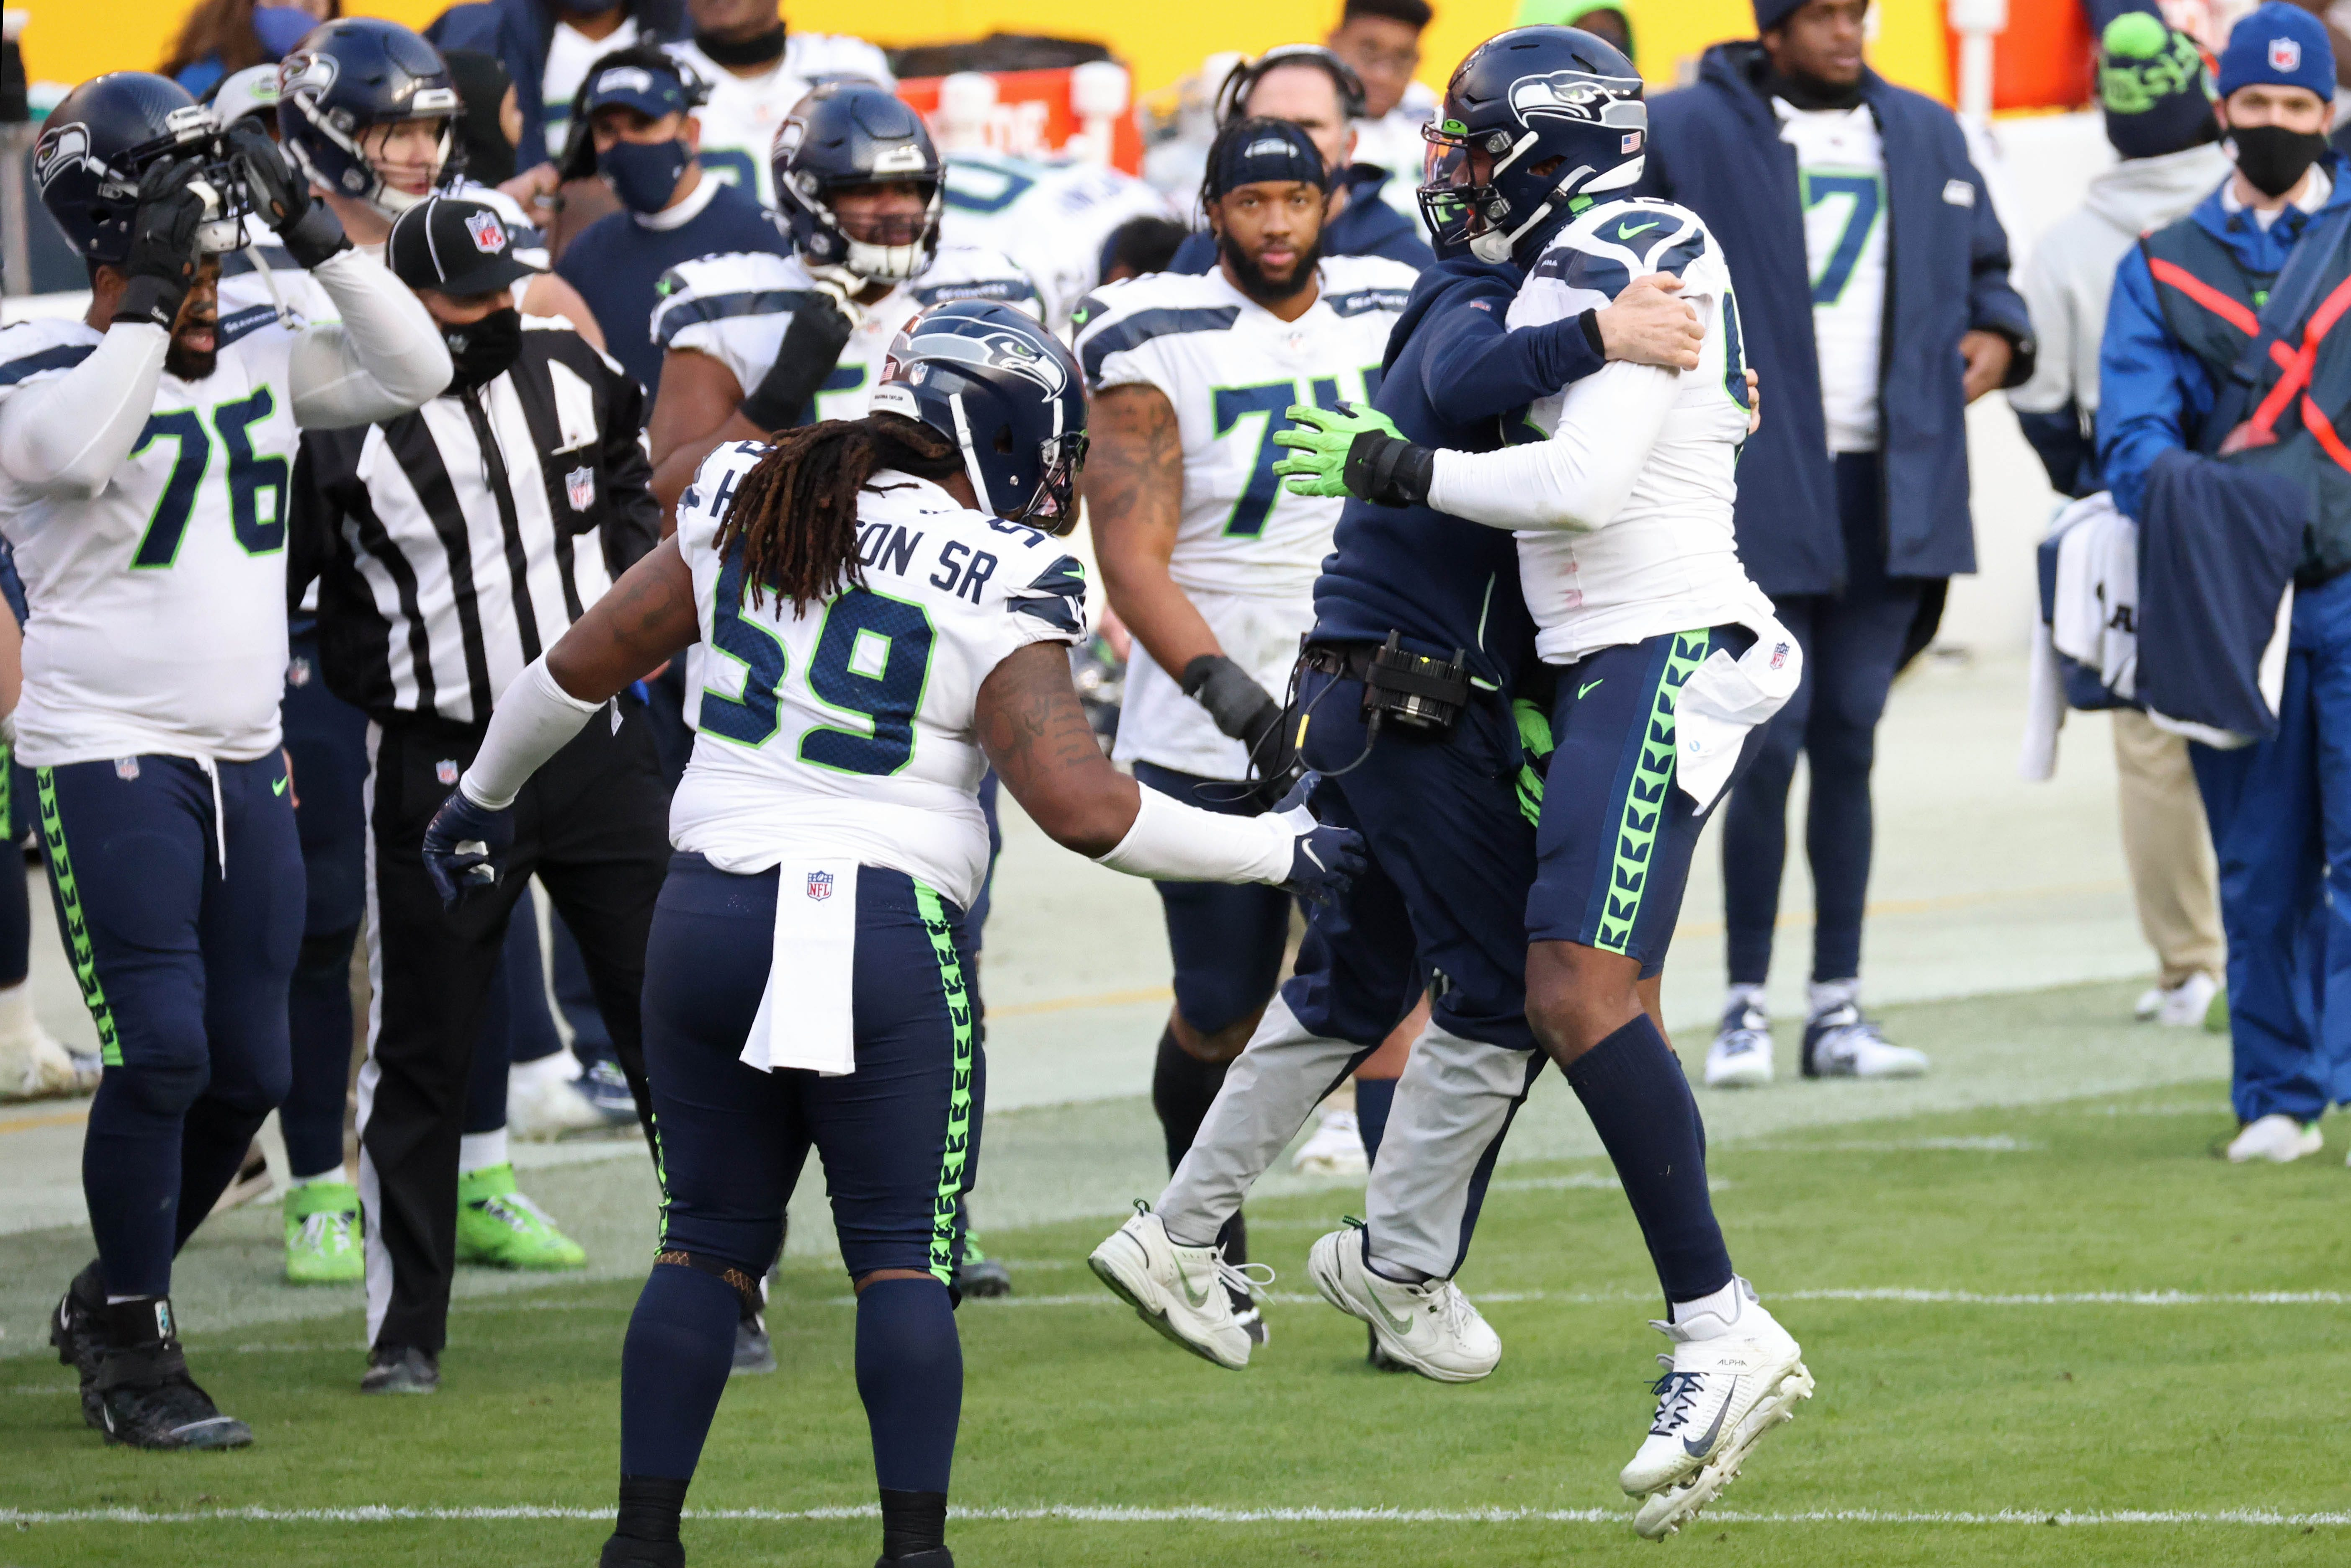 NFL playoff picture after Week 15: Seahawks clinch spot, assume first place in NFC West, as Rams stumble